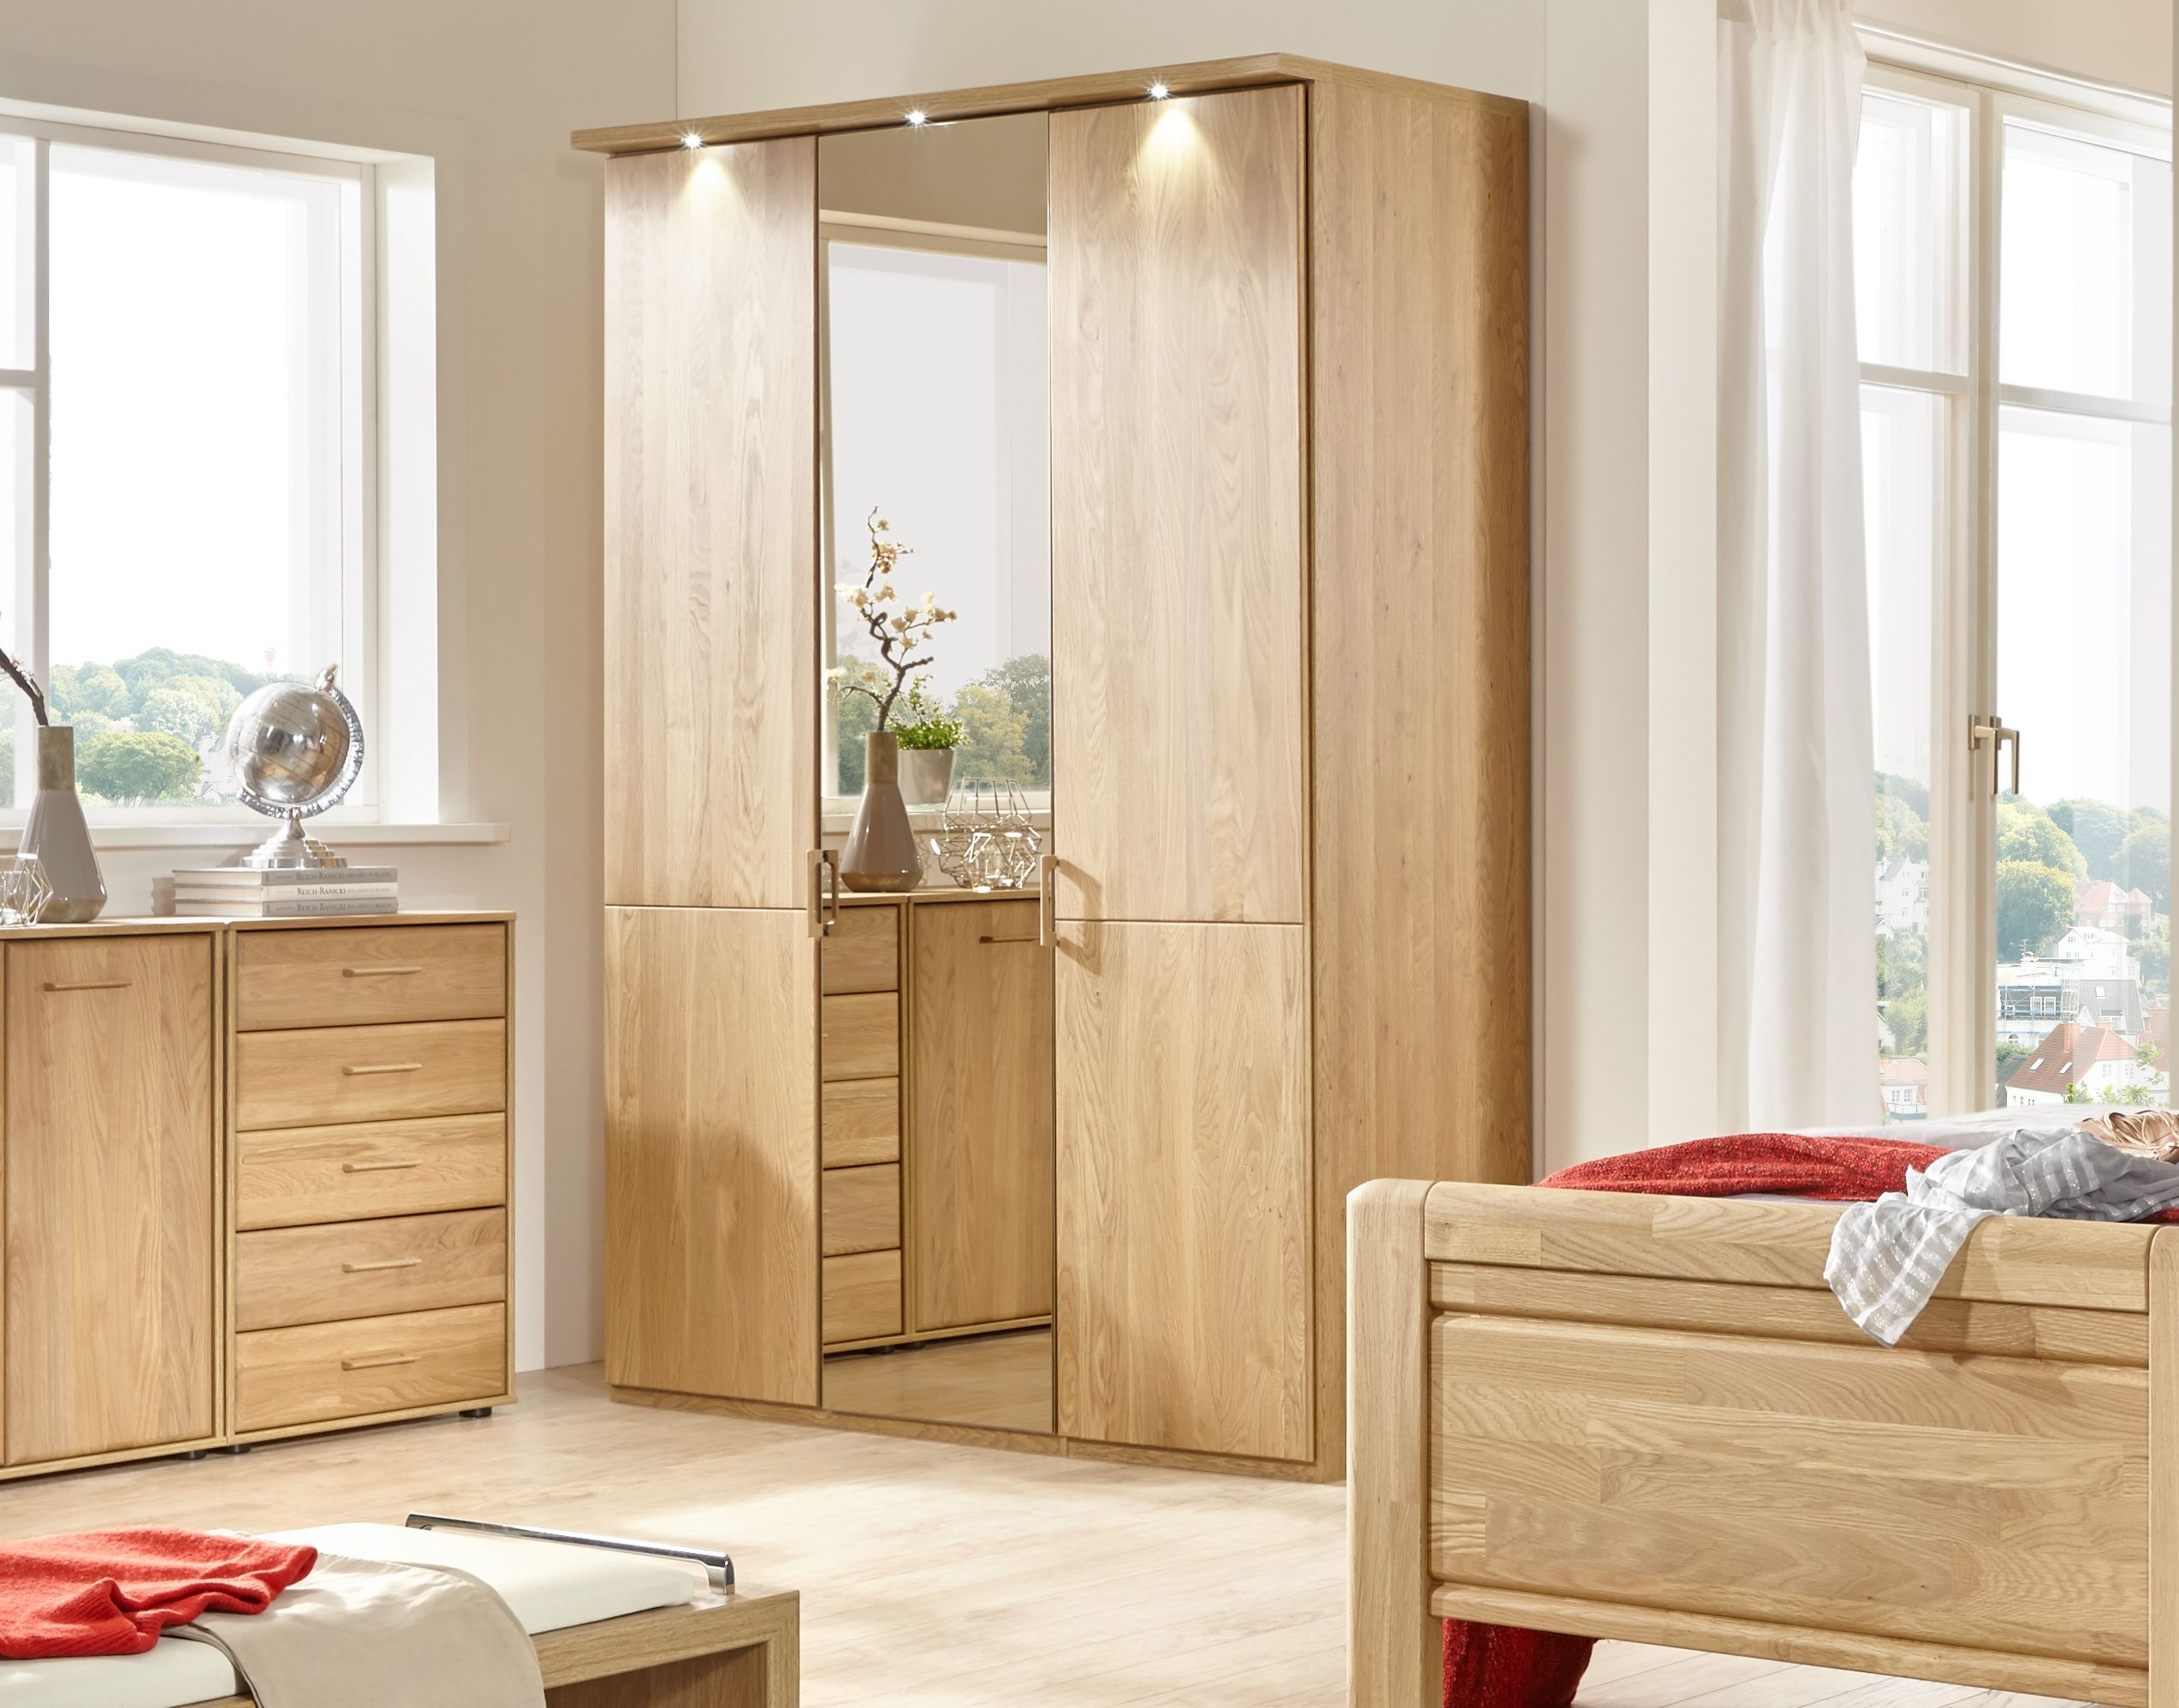 Wiemann Lido 7 Door 1 Mirror Wardrobe in Oak - W 350cm